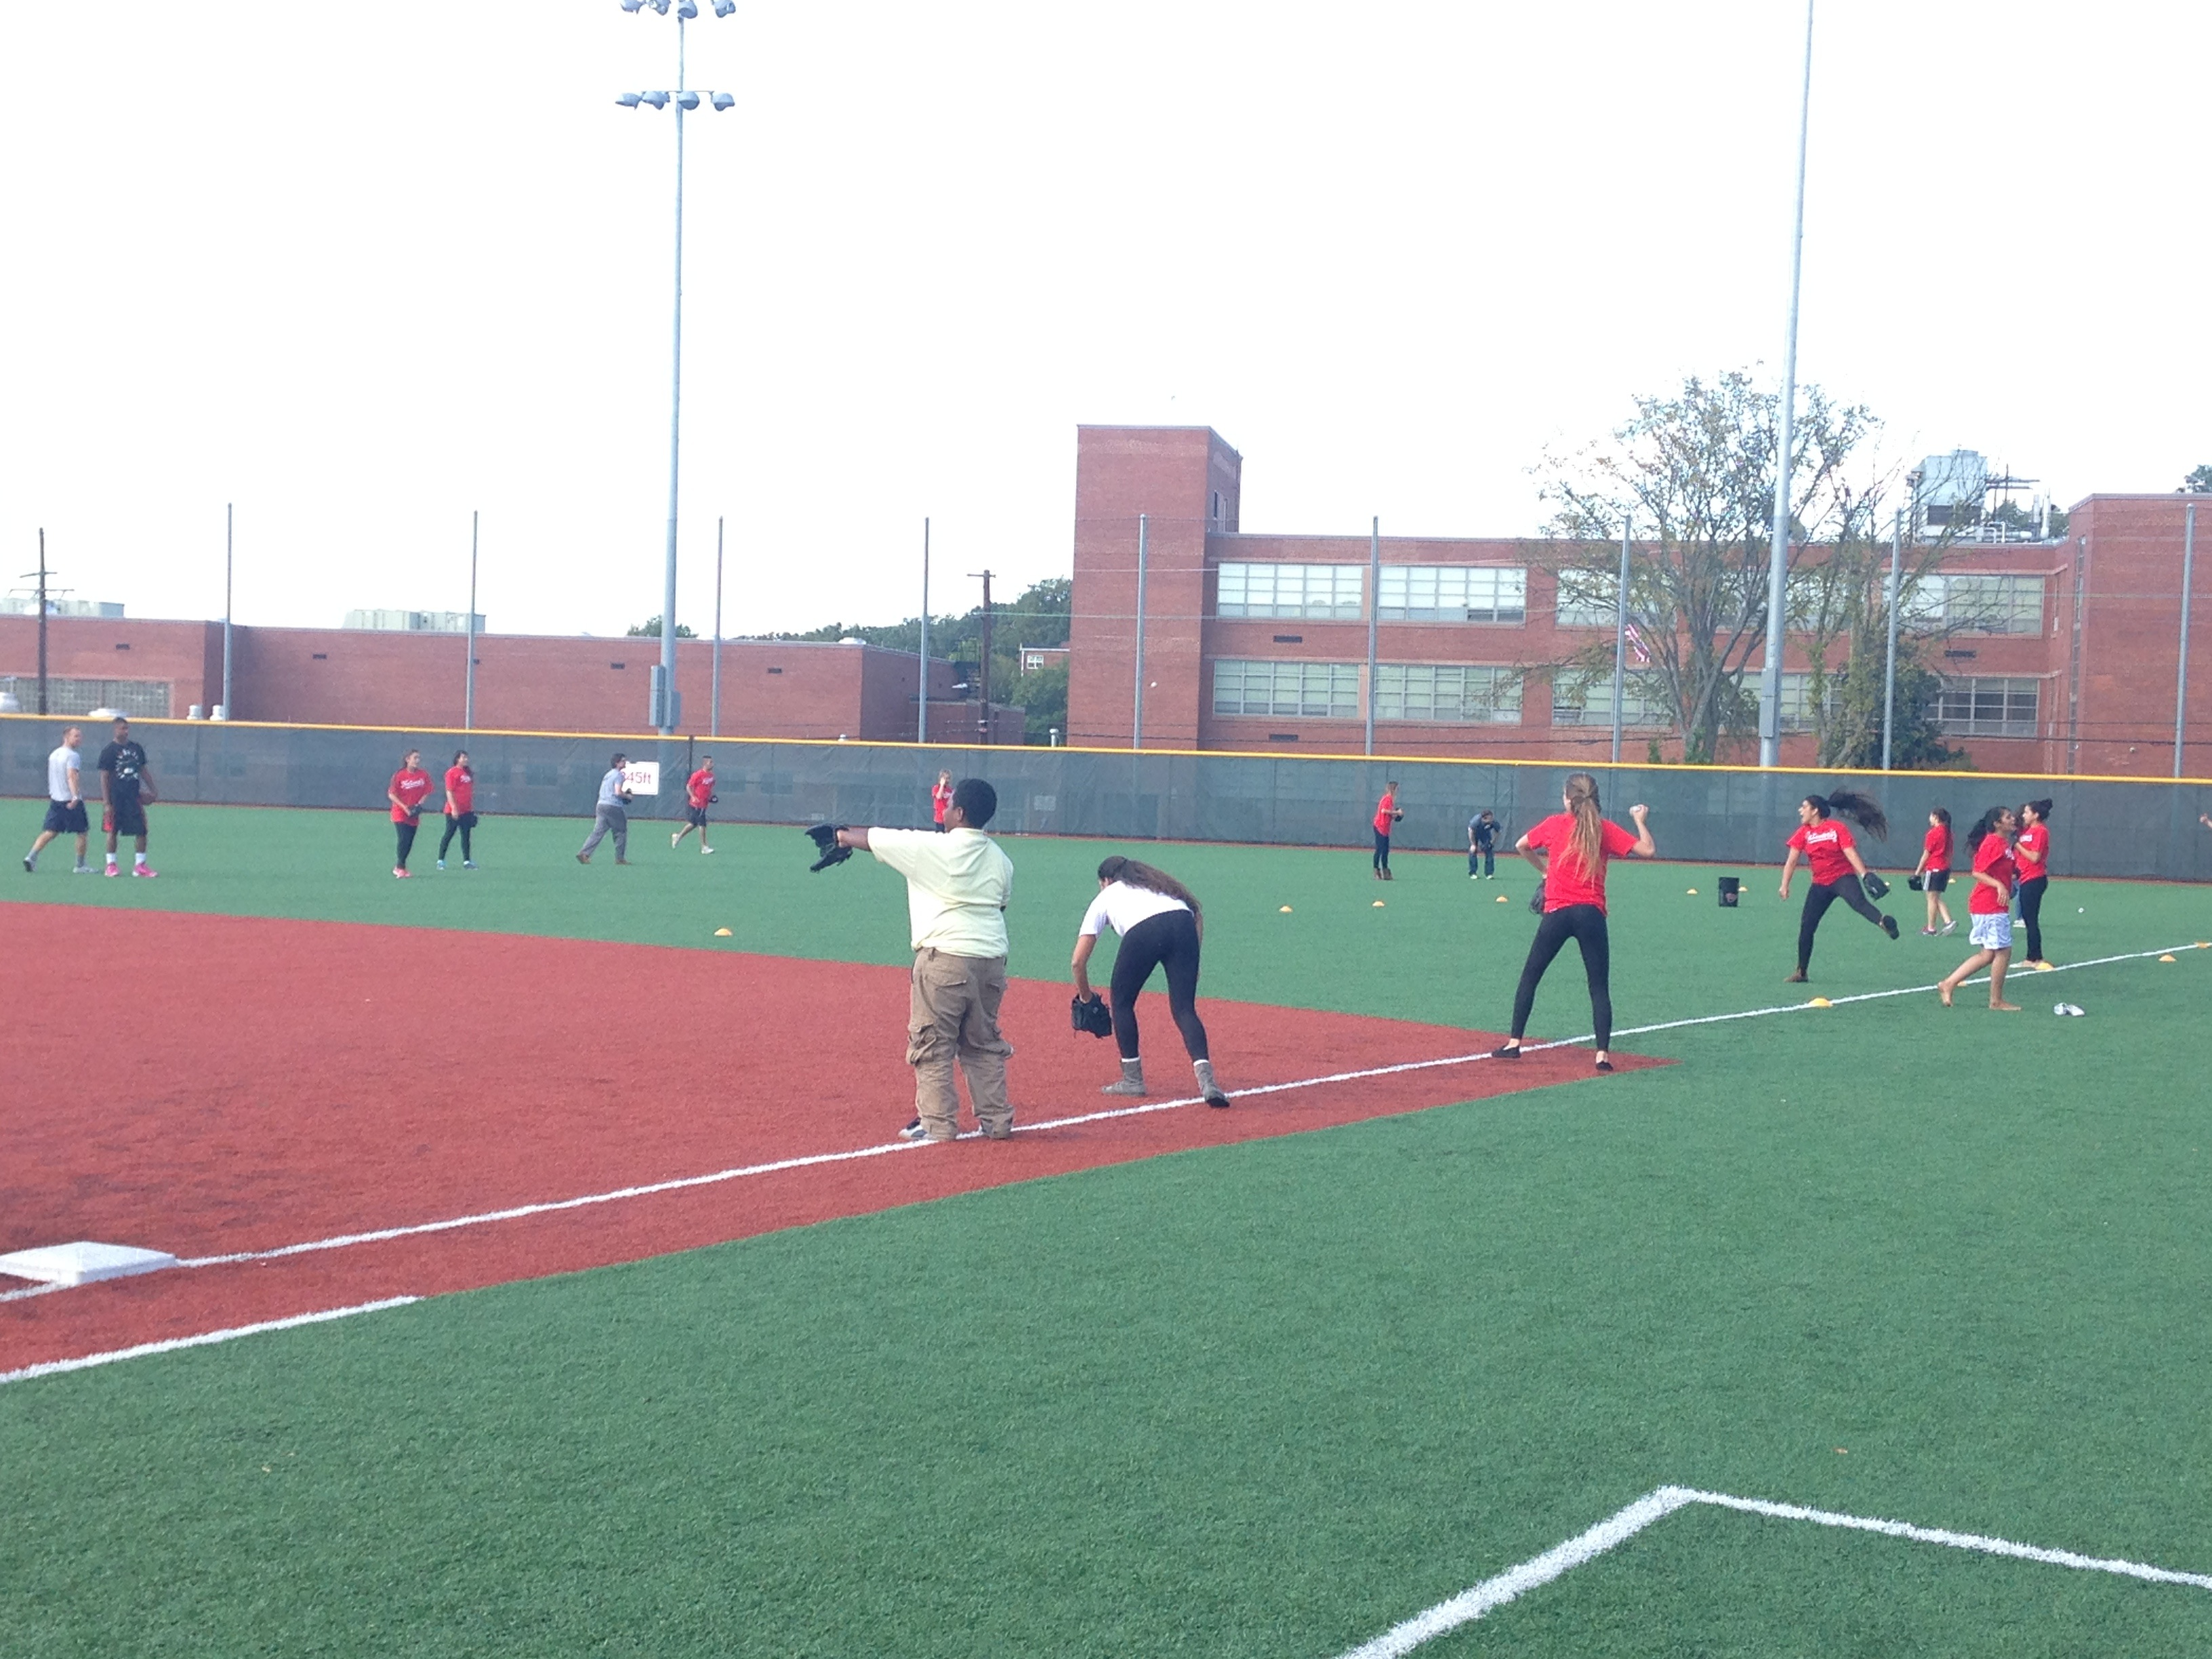 finding what motivates you in life from the field ppi me s ldp members practicing baseball drills at the washington nationals youth baseball academy